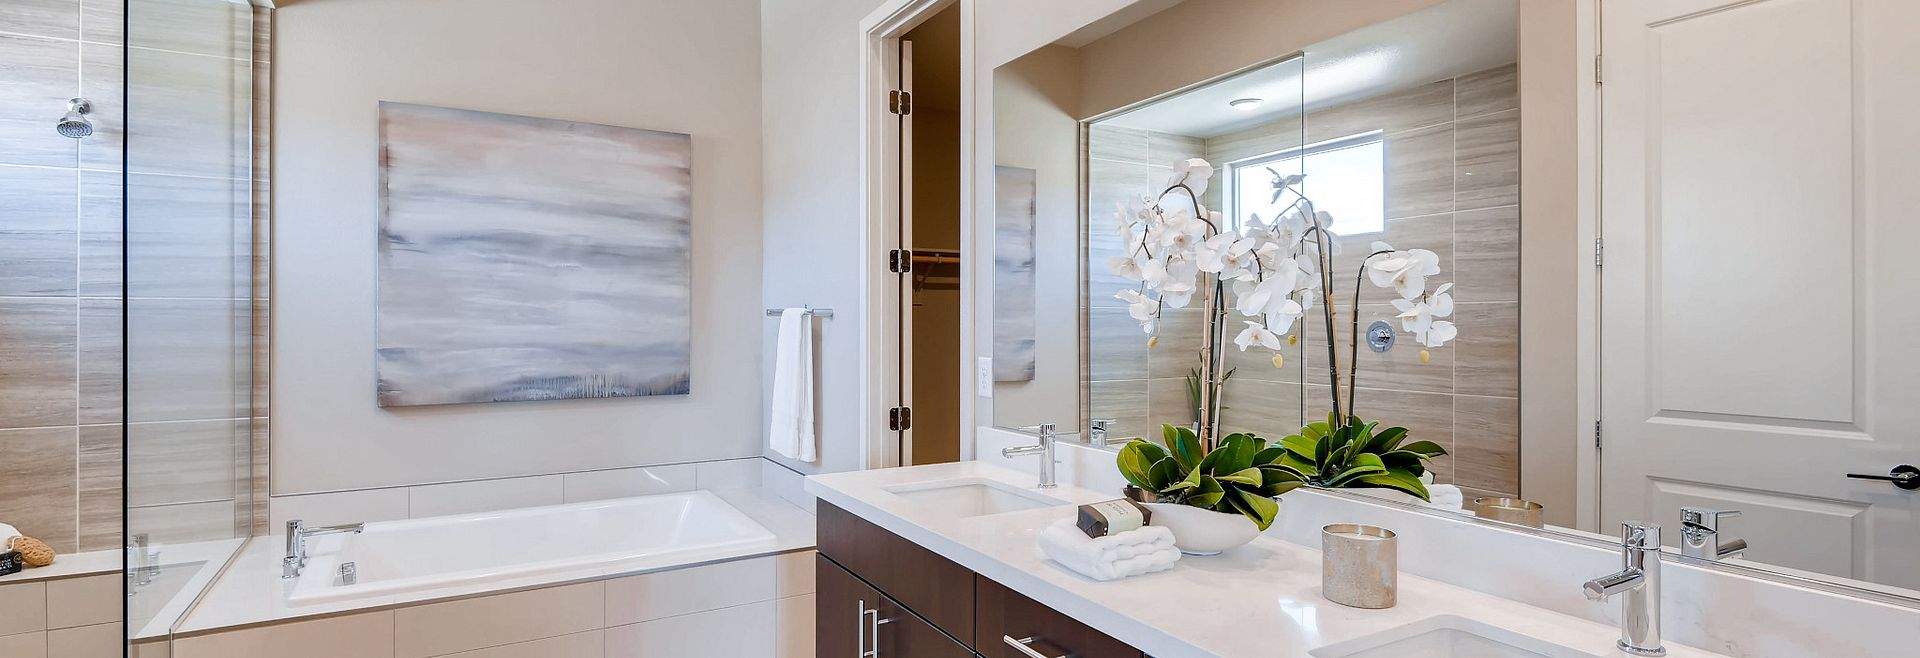 Trilogy Summerlin Luminous Master Bathroom